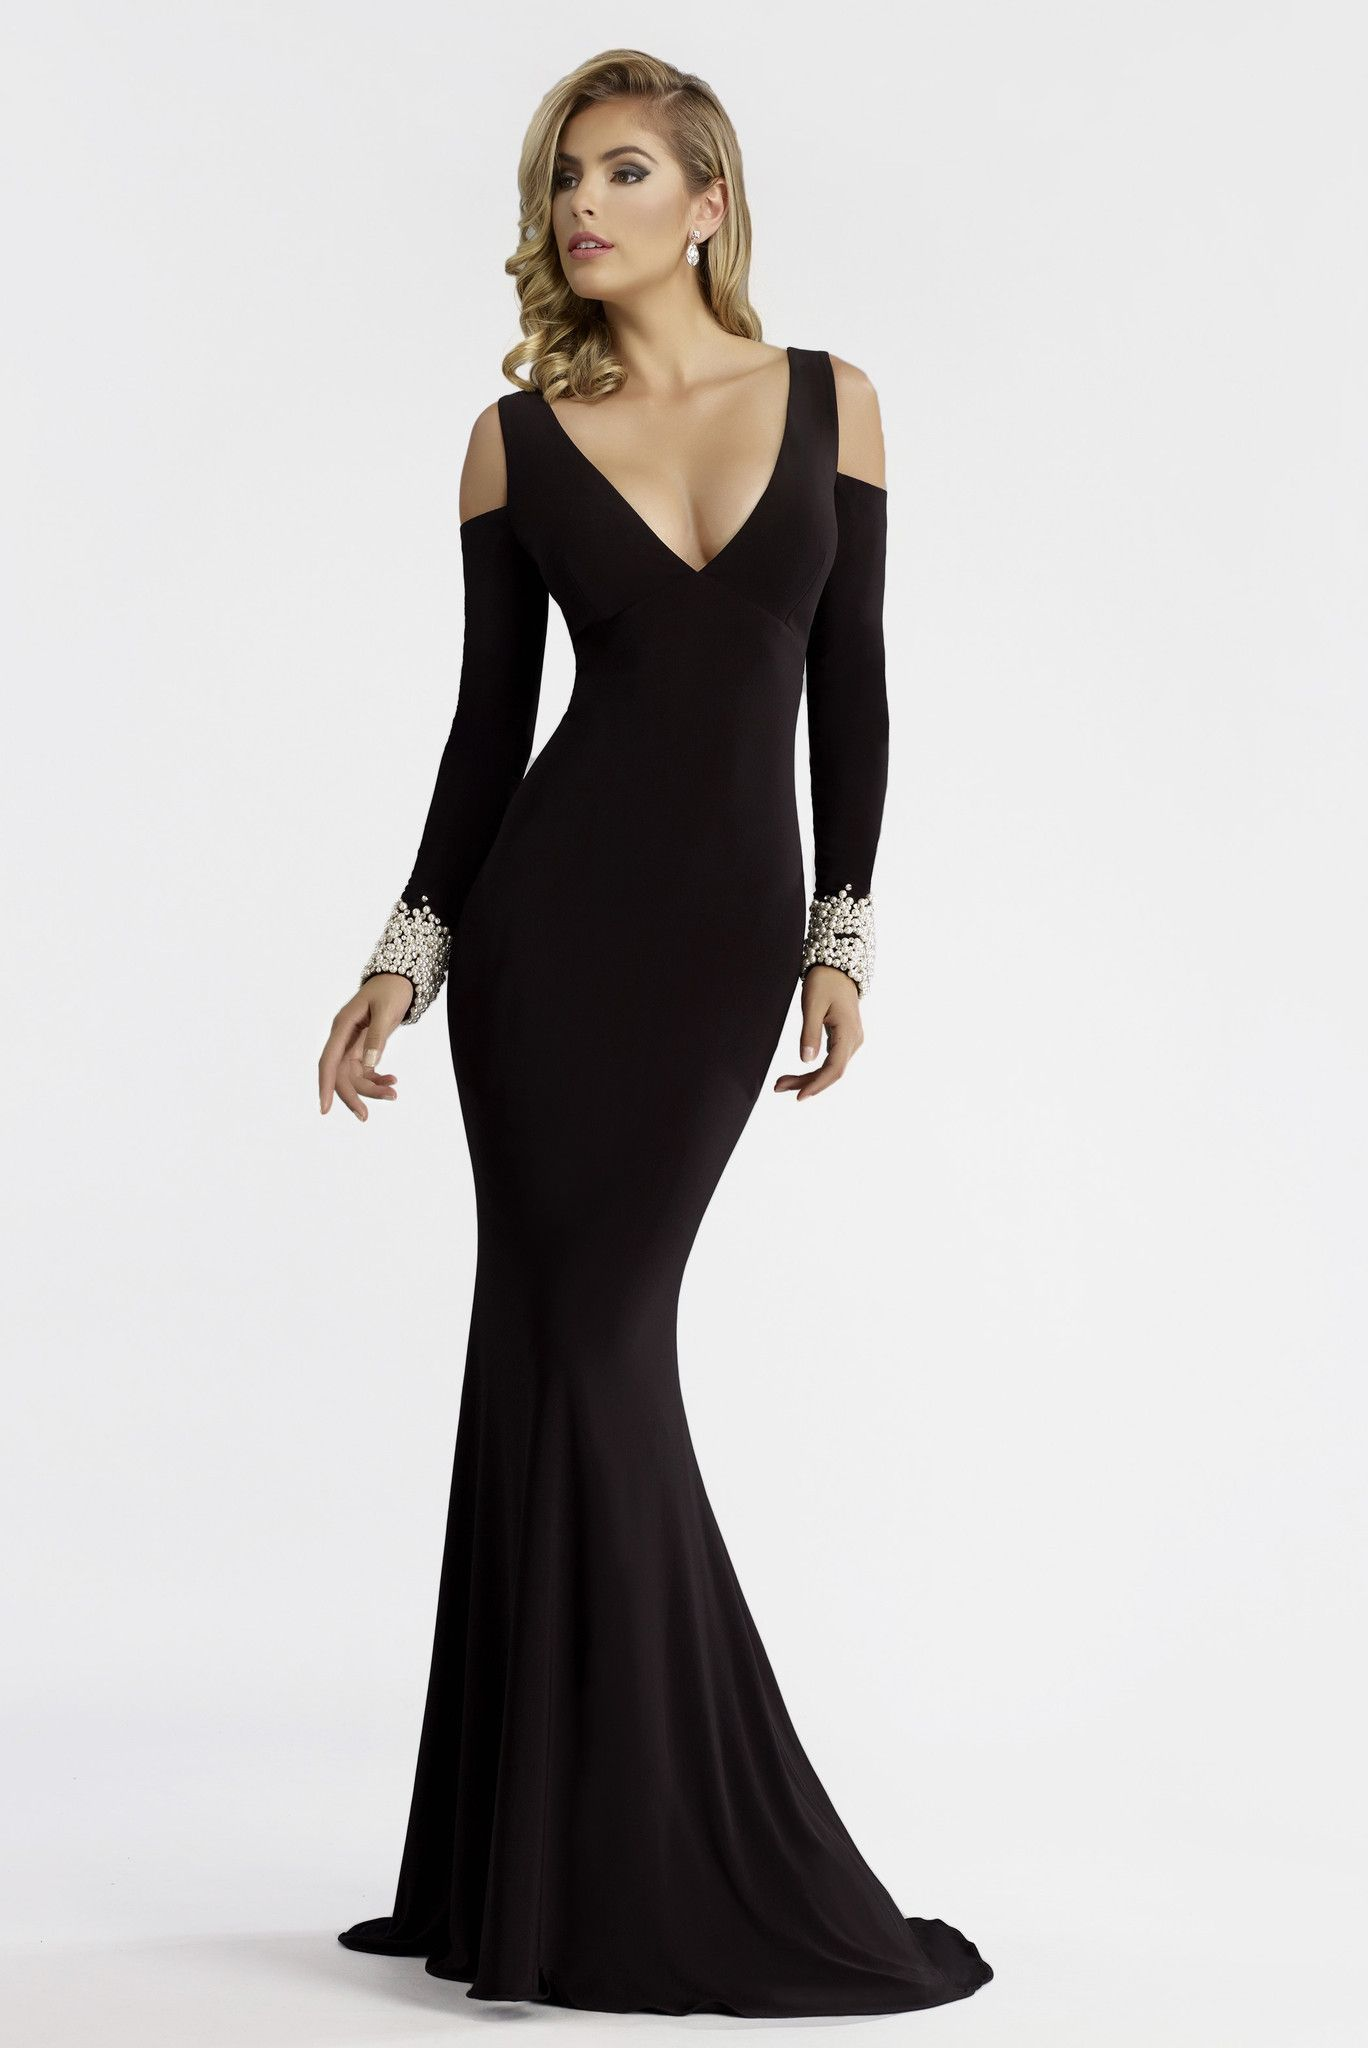 243864010e2 Janique Roma Gown With Pearl Sleeves